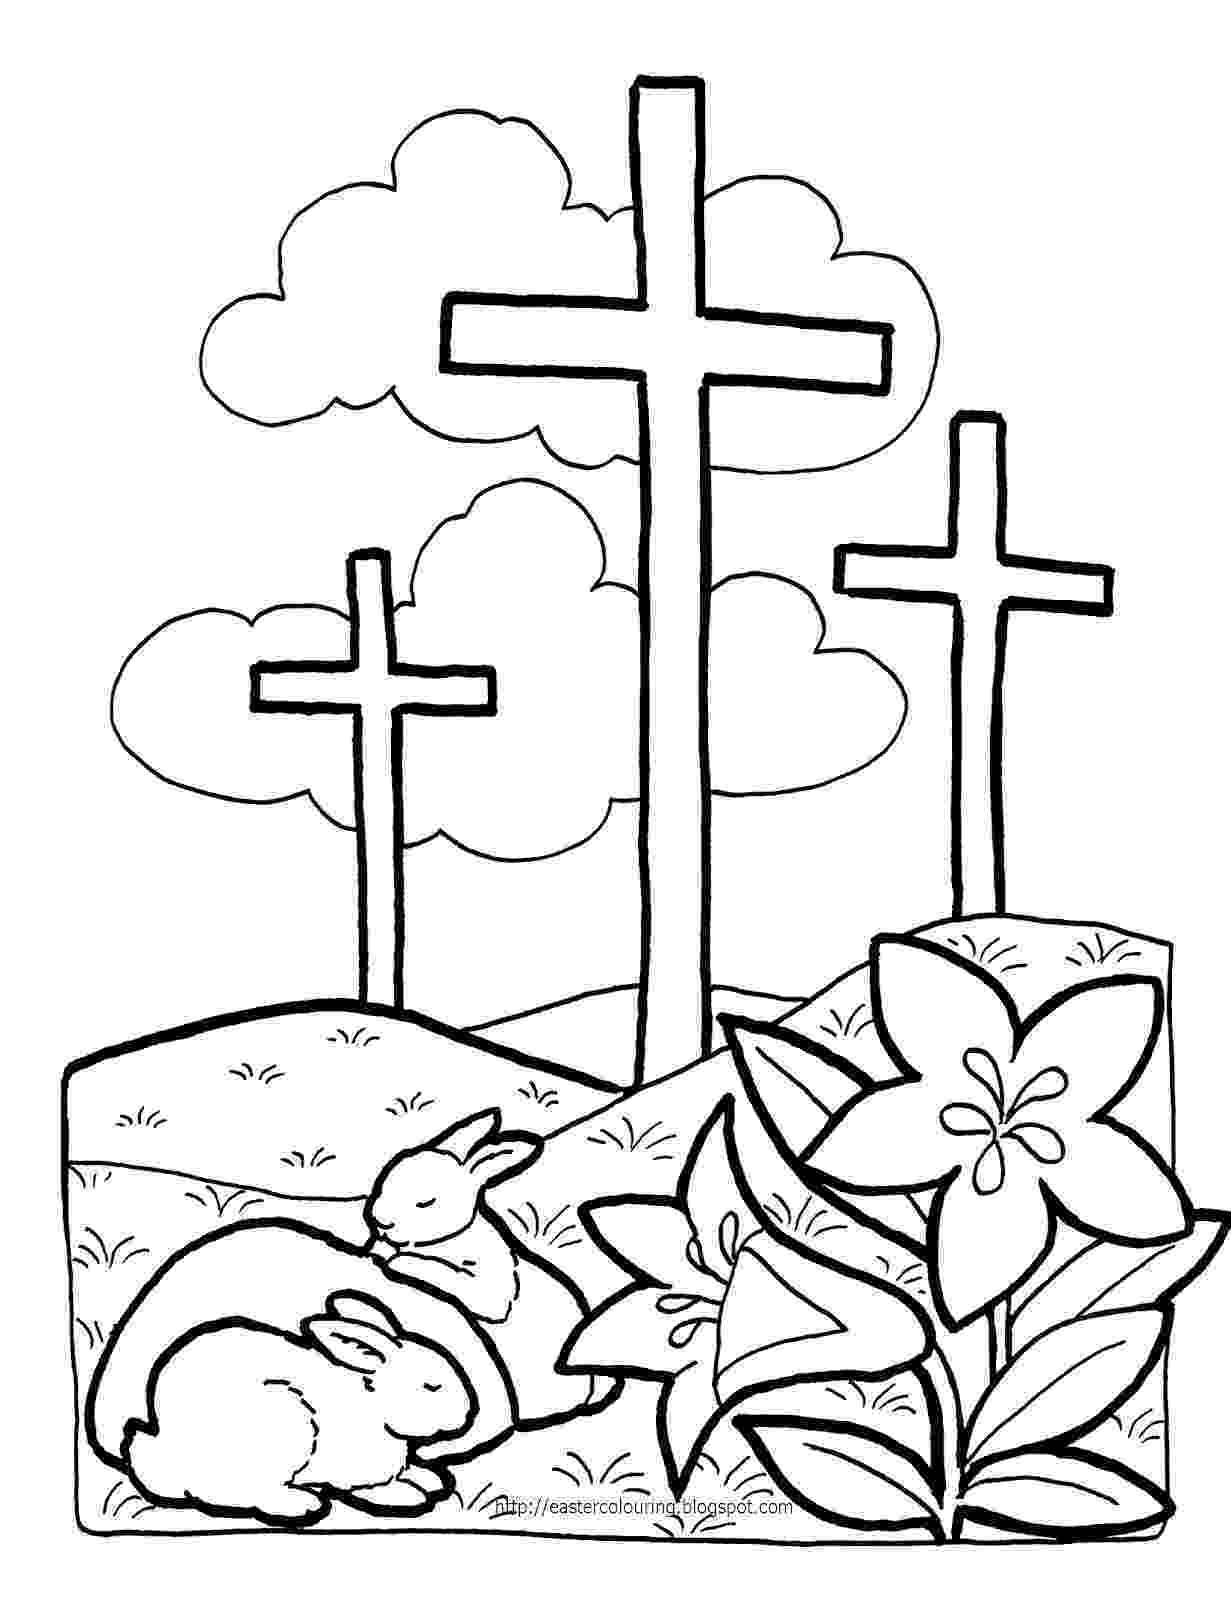 christian bible coloring pages free printable christian coloring pages for kids best coloring bible christian pages